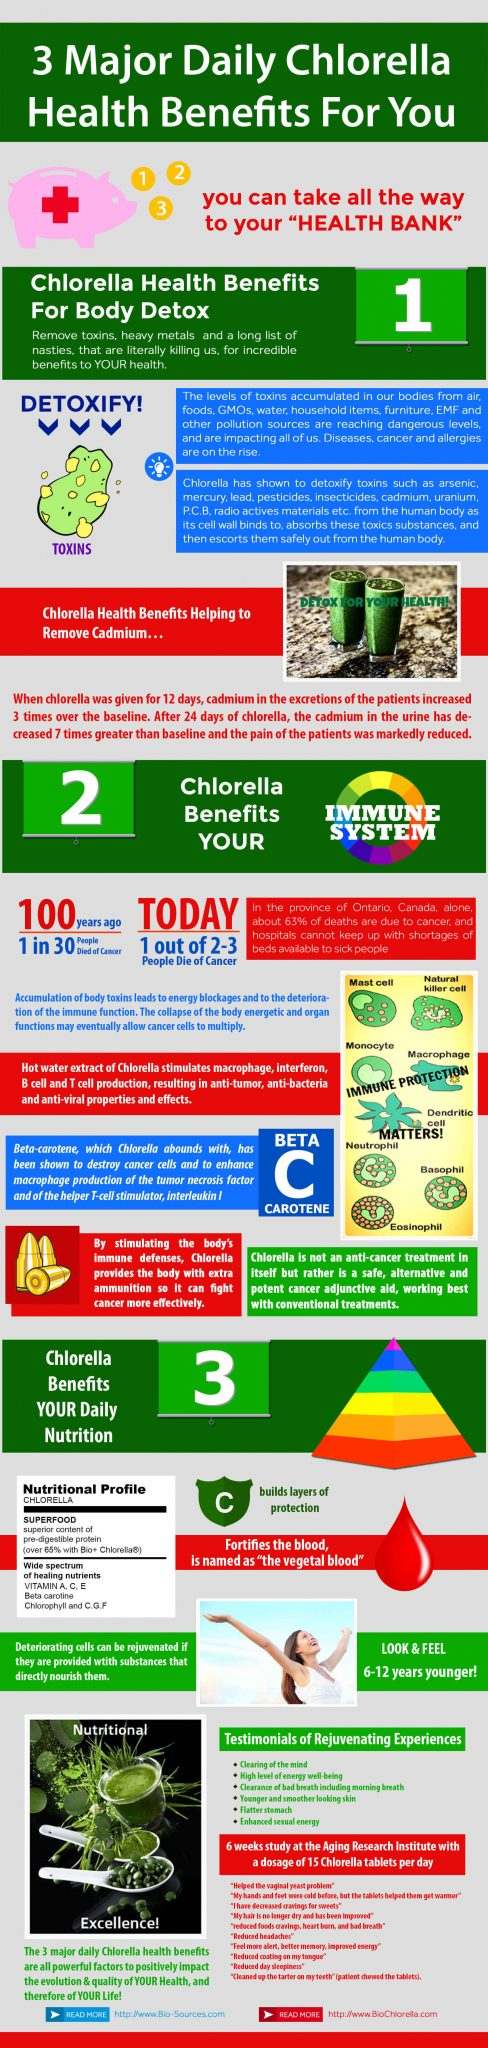 Discover the top 3 Major Daily Chlorella Health Benefits For You. Chlorella may offer you oodles of health benefits,